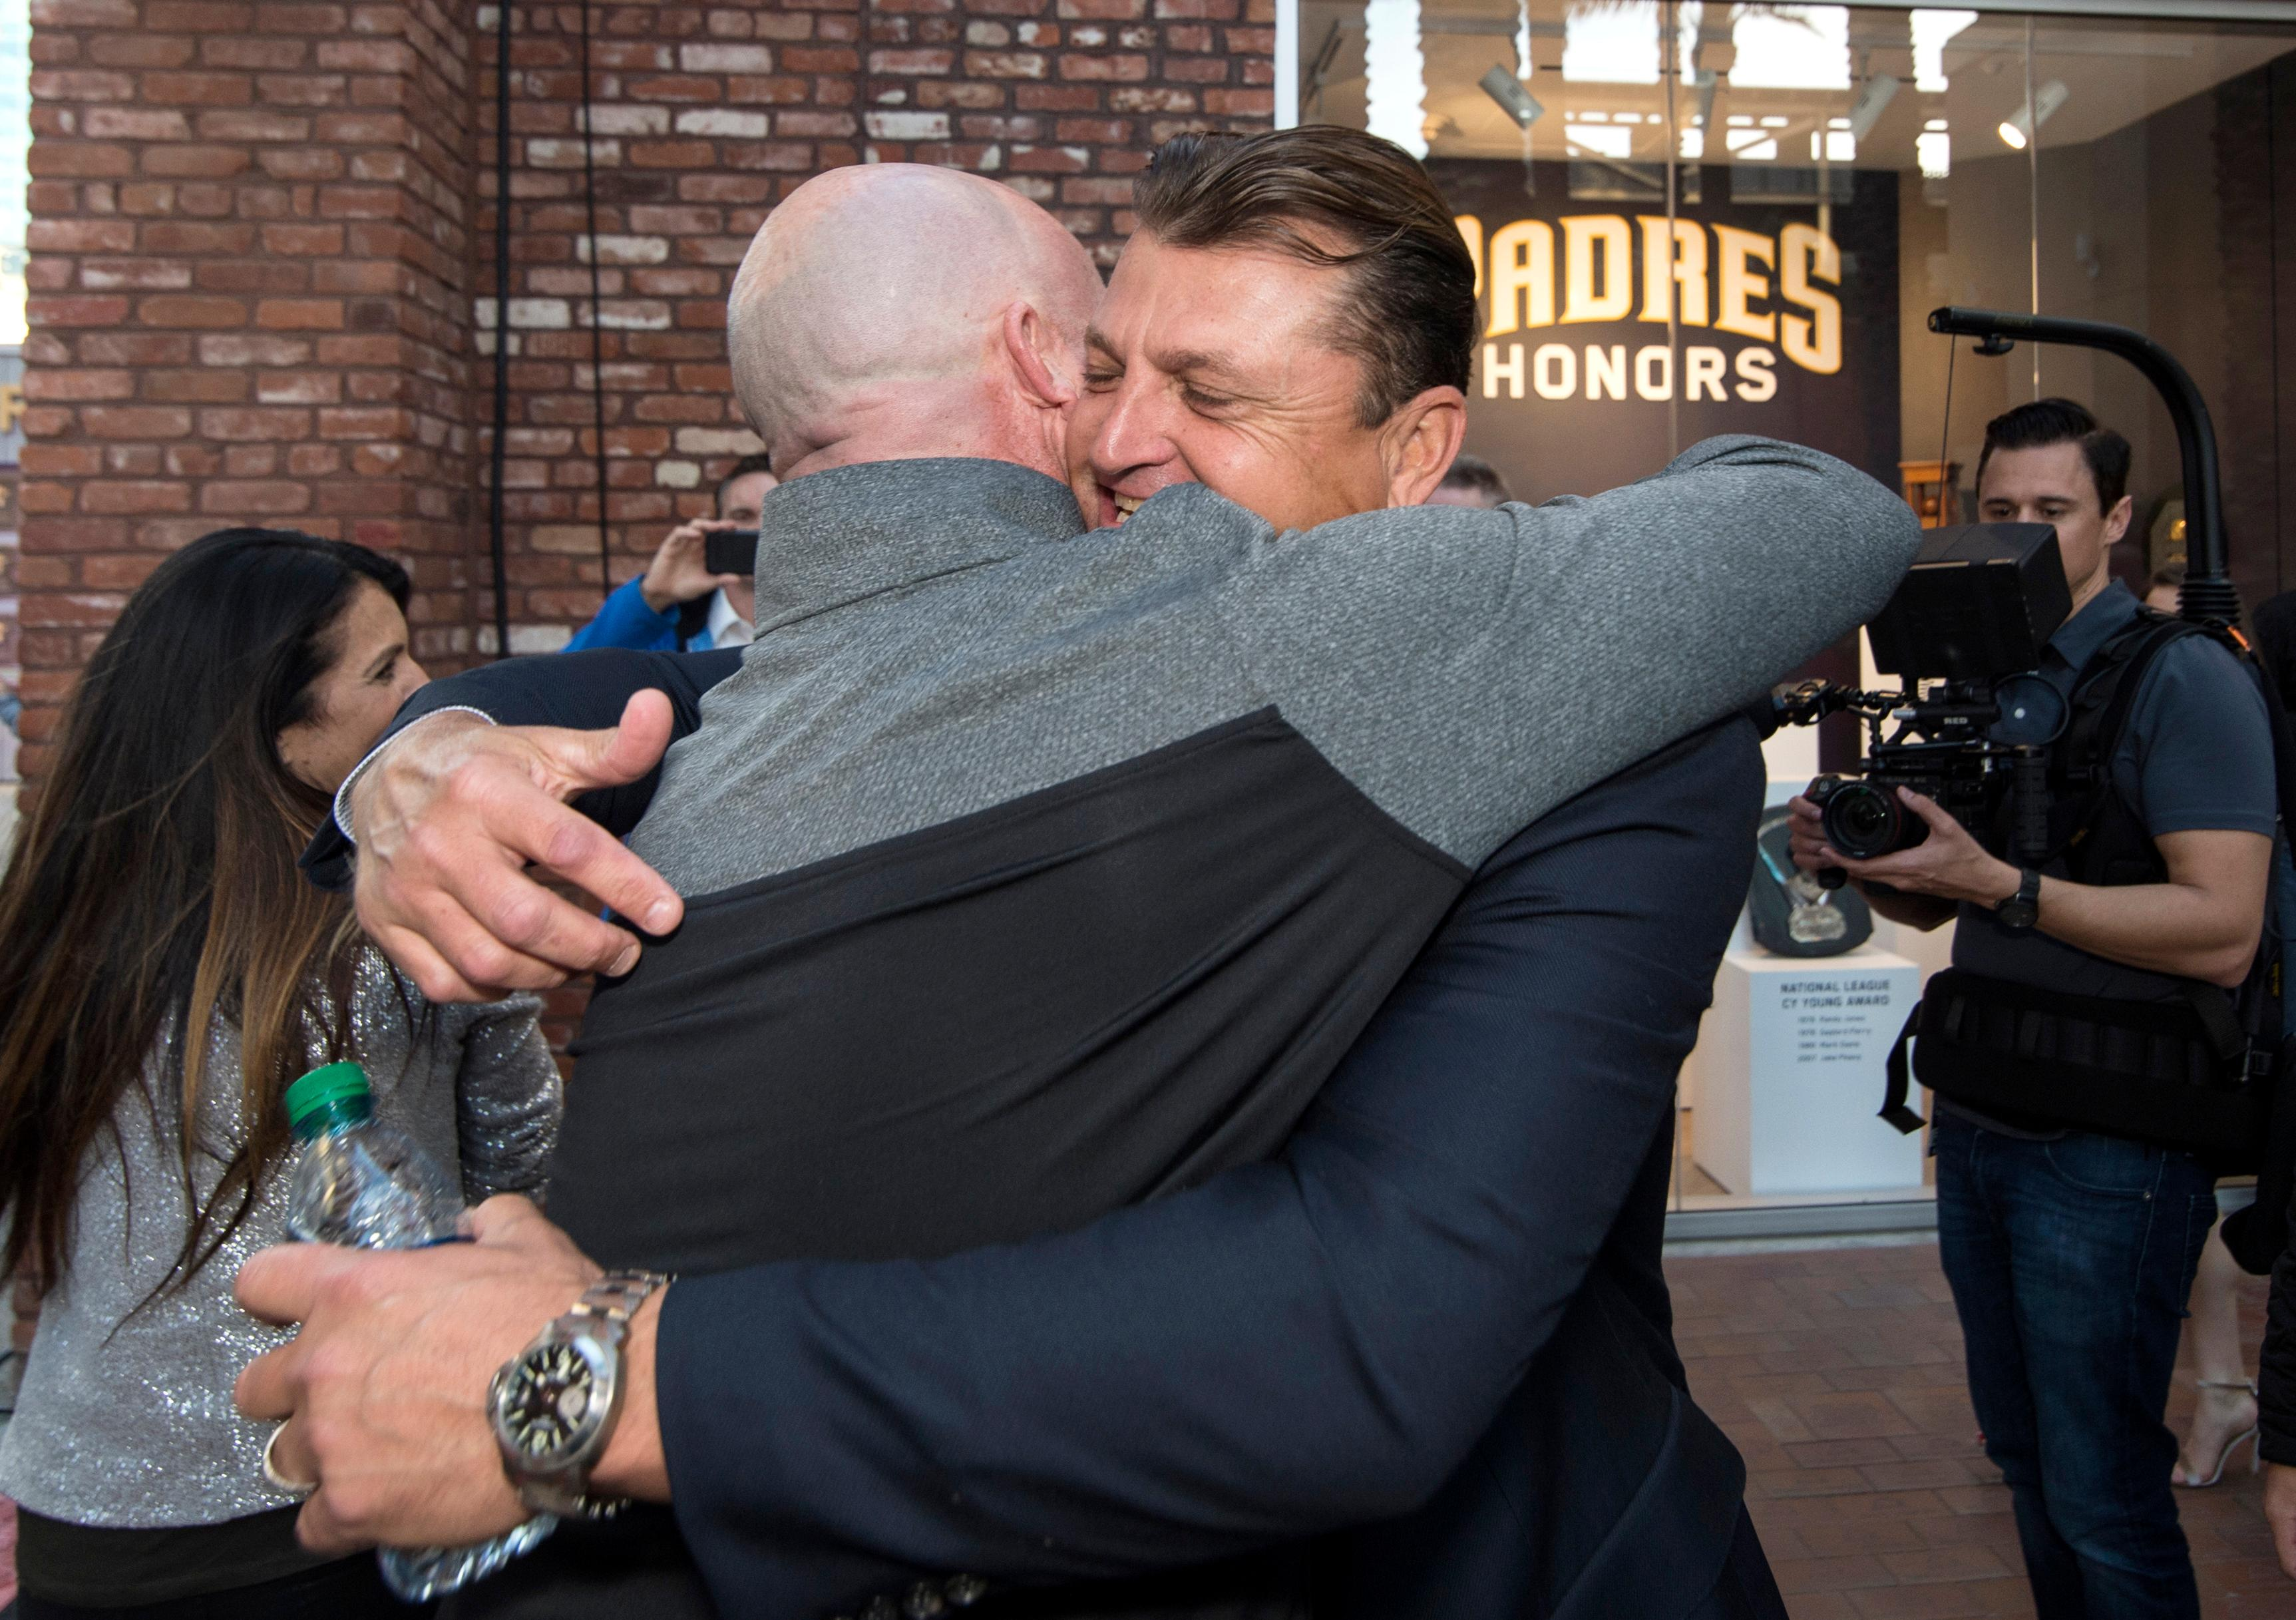 Former San Diego Padres closer Trevor Hoffman, center right, hugs former teammate Mark Sweeney before a news conference Wednesday, Jan. 24, 2018, in San Diego after Hoffman was elected to the baseball Hall of Fame. (AP Photo/Kyusung Gong)